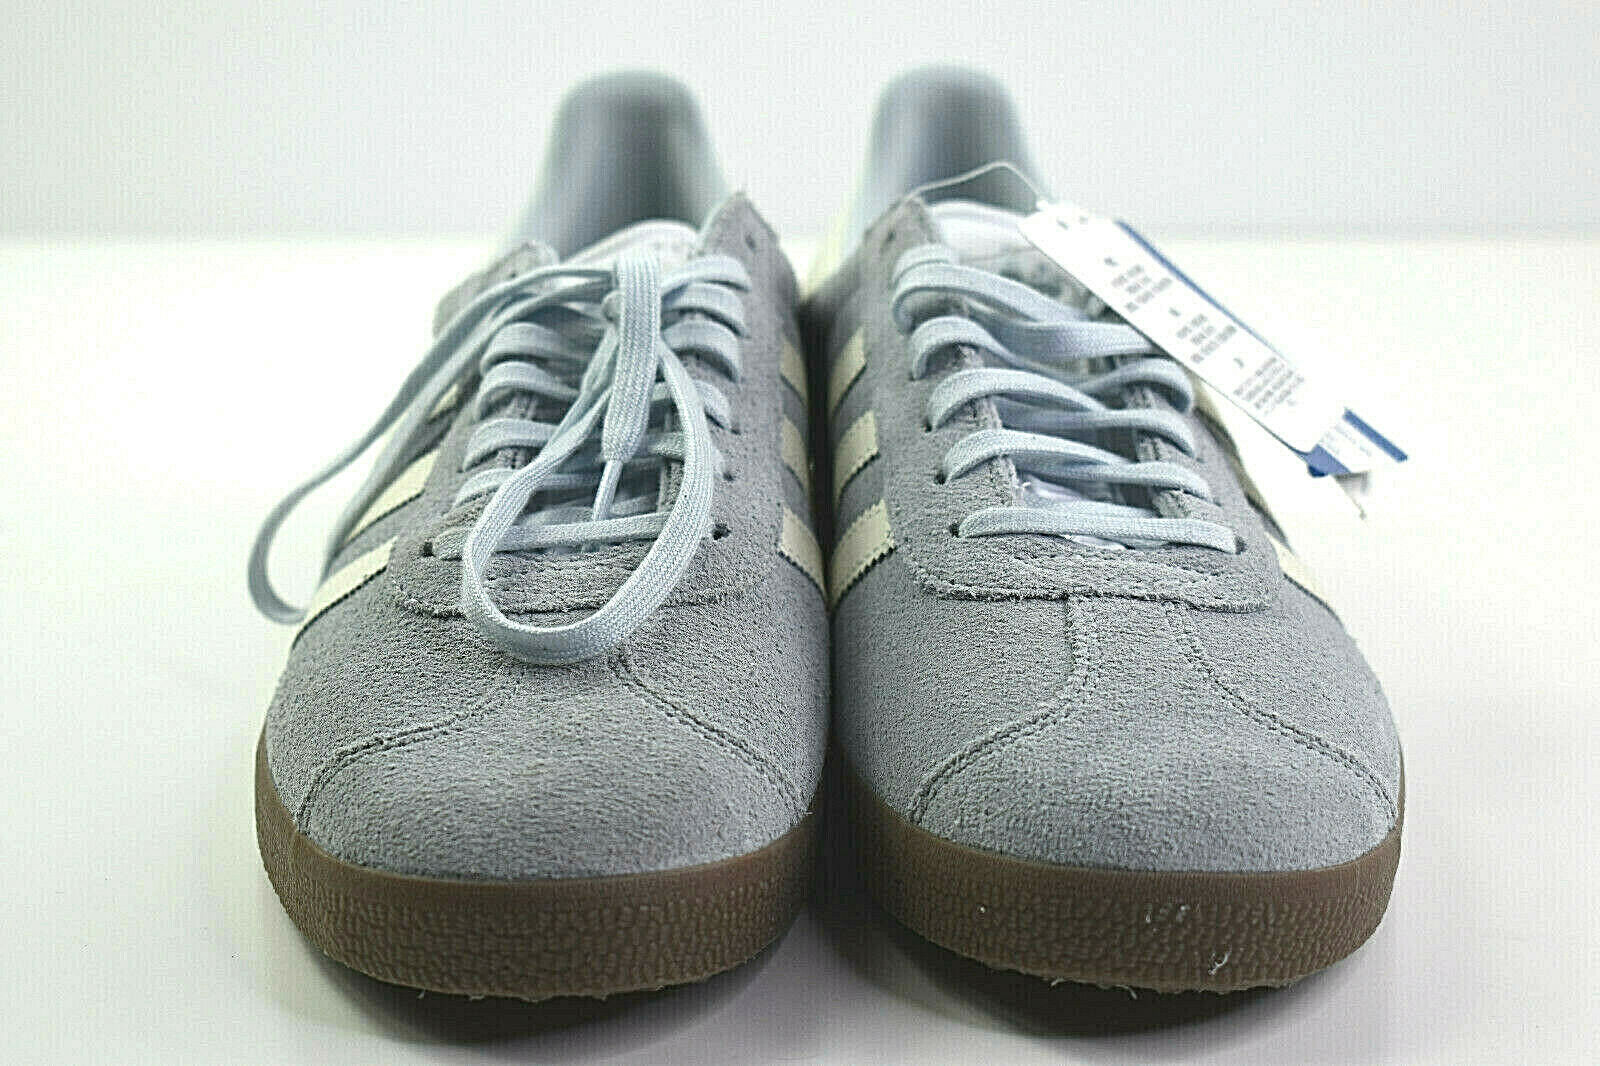 Womens Adidas Suede Gazelle Training Sneaker bluee Tint Tint Tint Cloud White Size 10 47d4f3